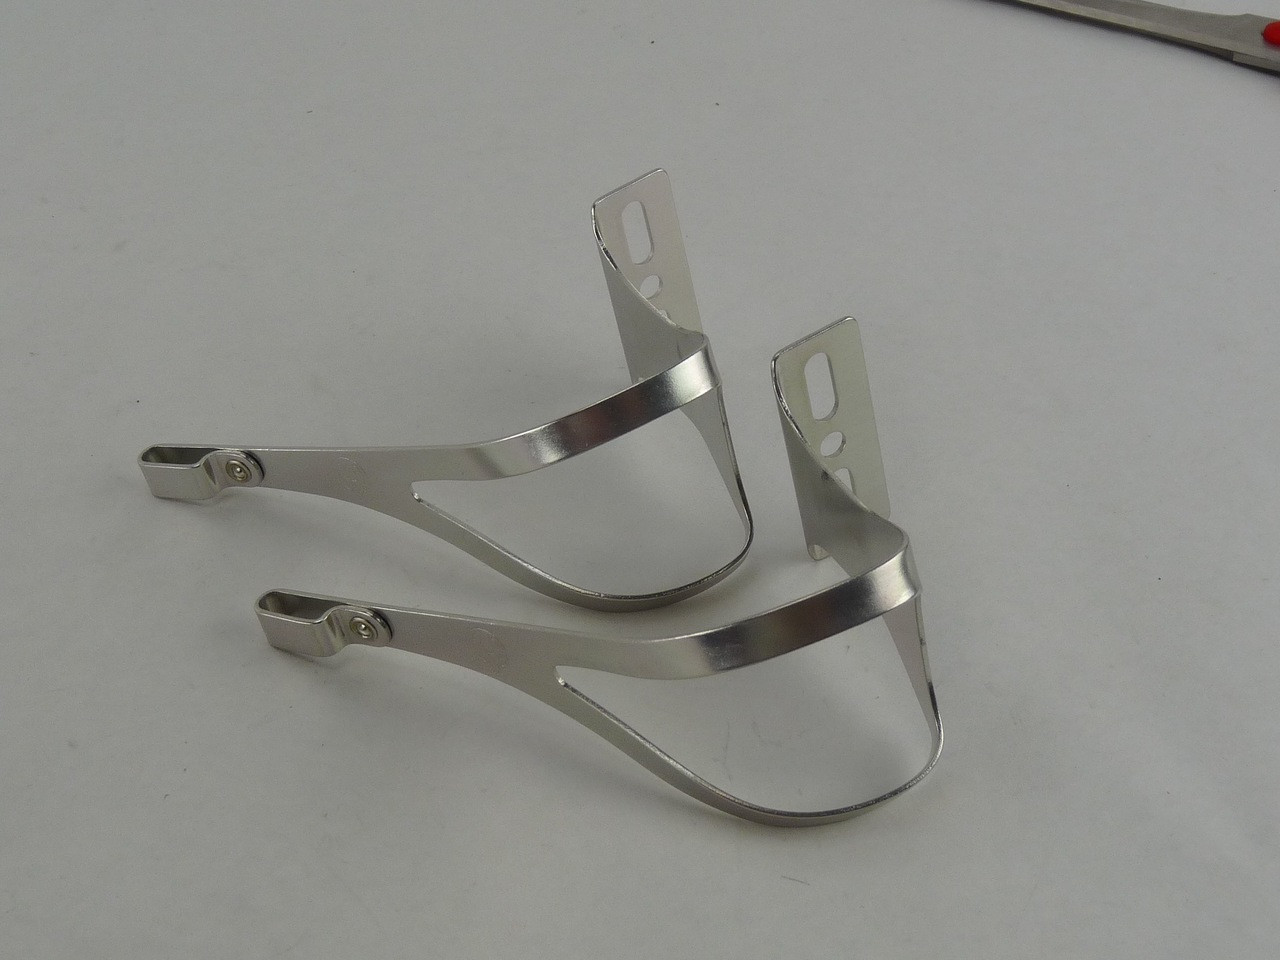 NOS Cinelli Black Alloy Toe Clips Size Large NEW Old Stock in Box